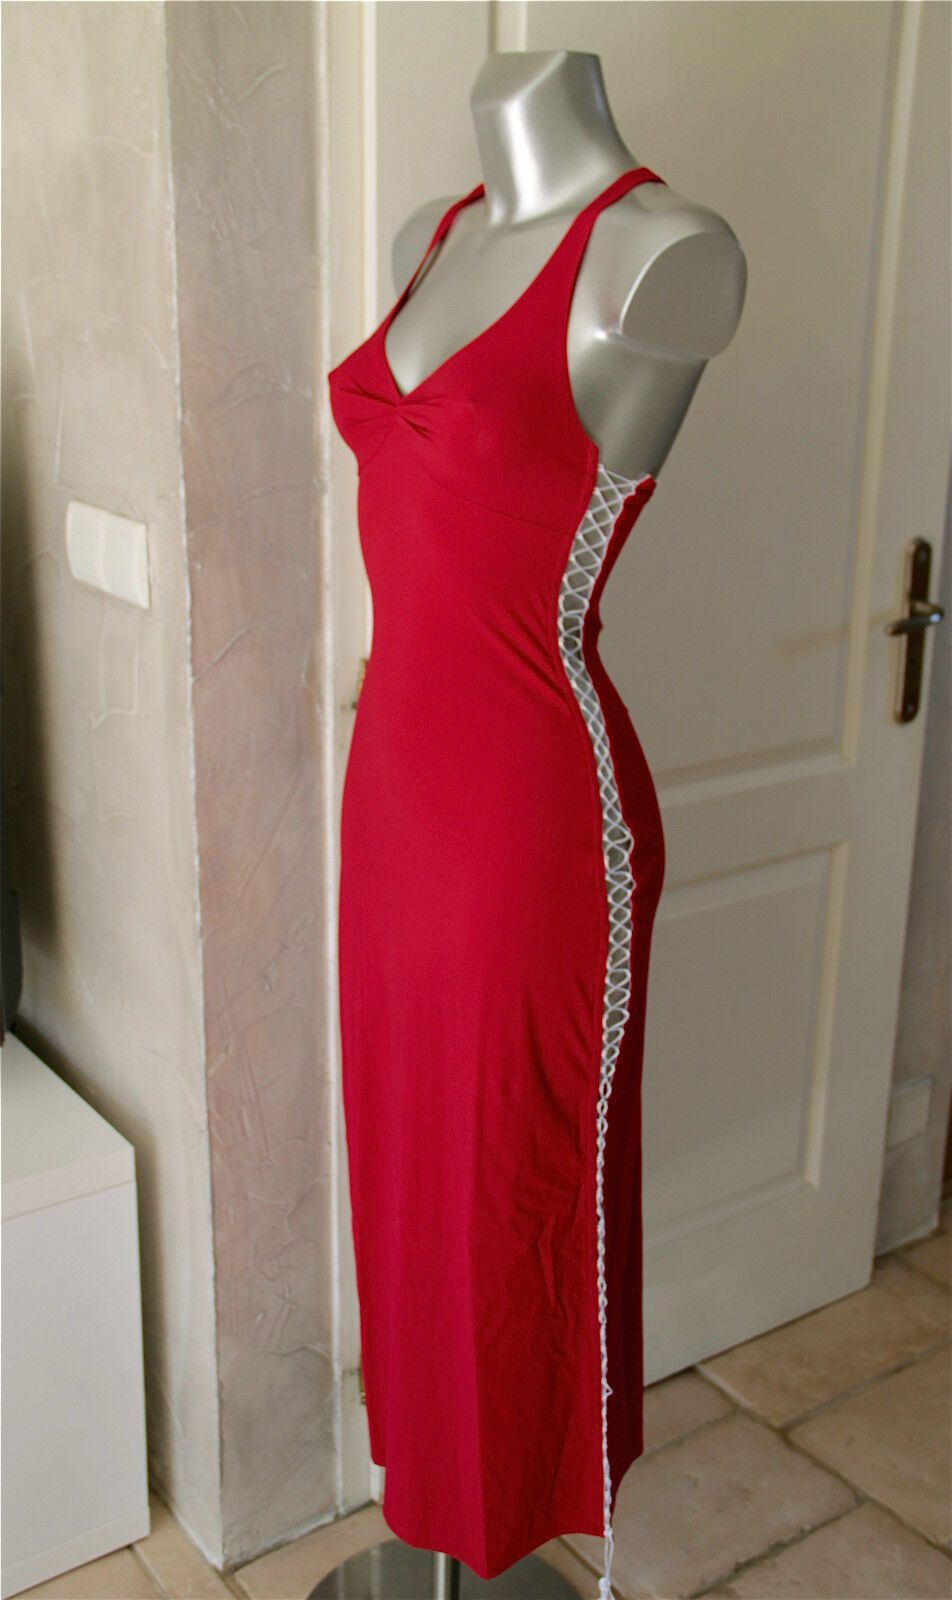 Dress laced lycra red luxe VANNINA VESPERINI size 38 NEW LABEL val